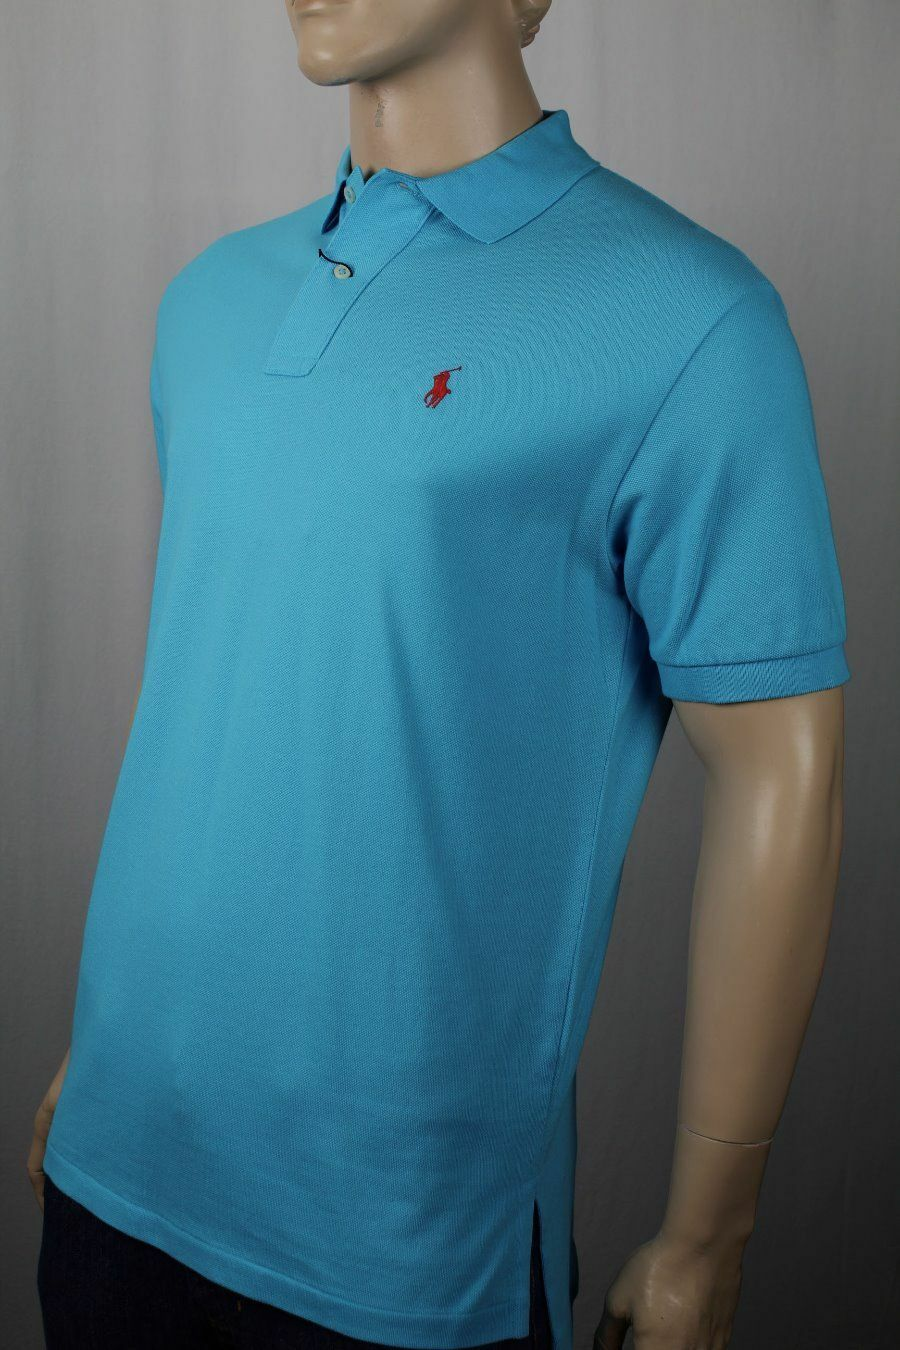 68849ac99d Ralph Lauren bluee Mesh Polo Shirt Classic Fit Red Pony NWT. 90's ...